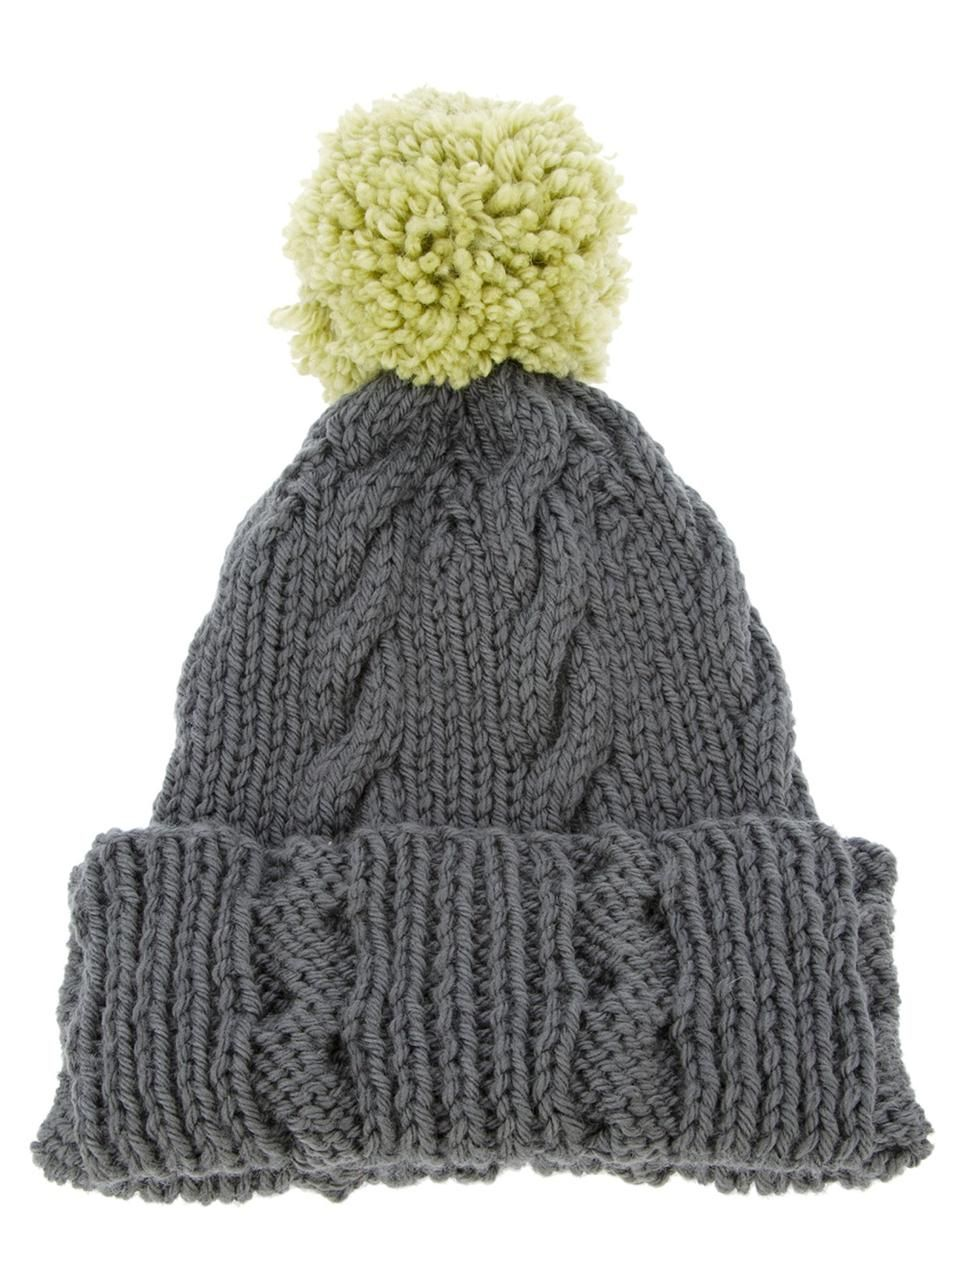 c884a8a98fc Labour Of Love grey wool bobble hat